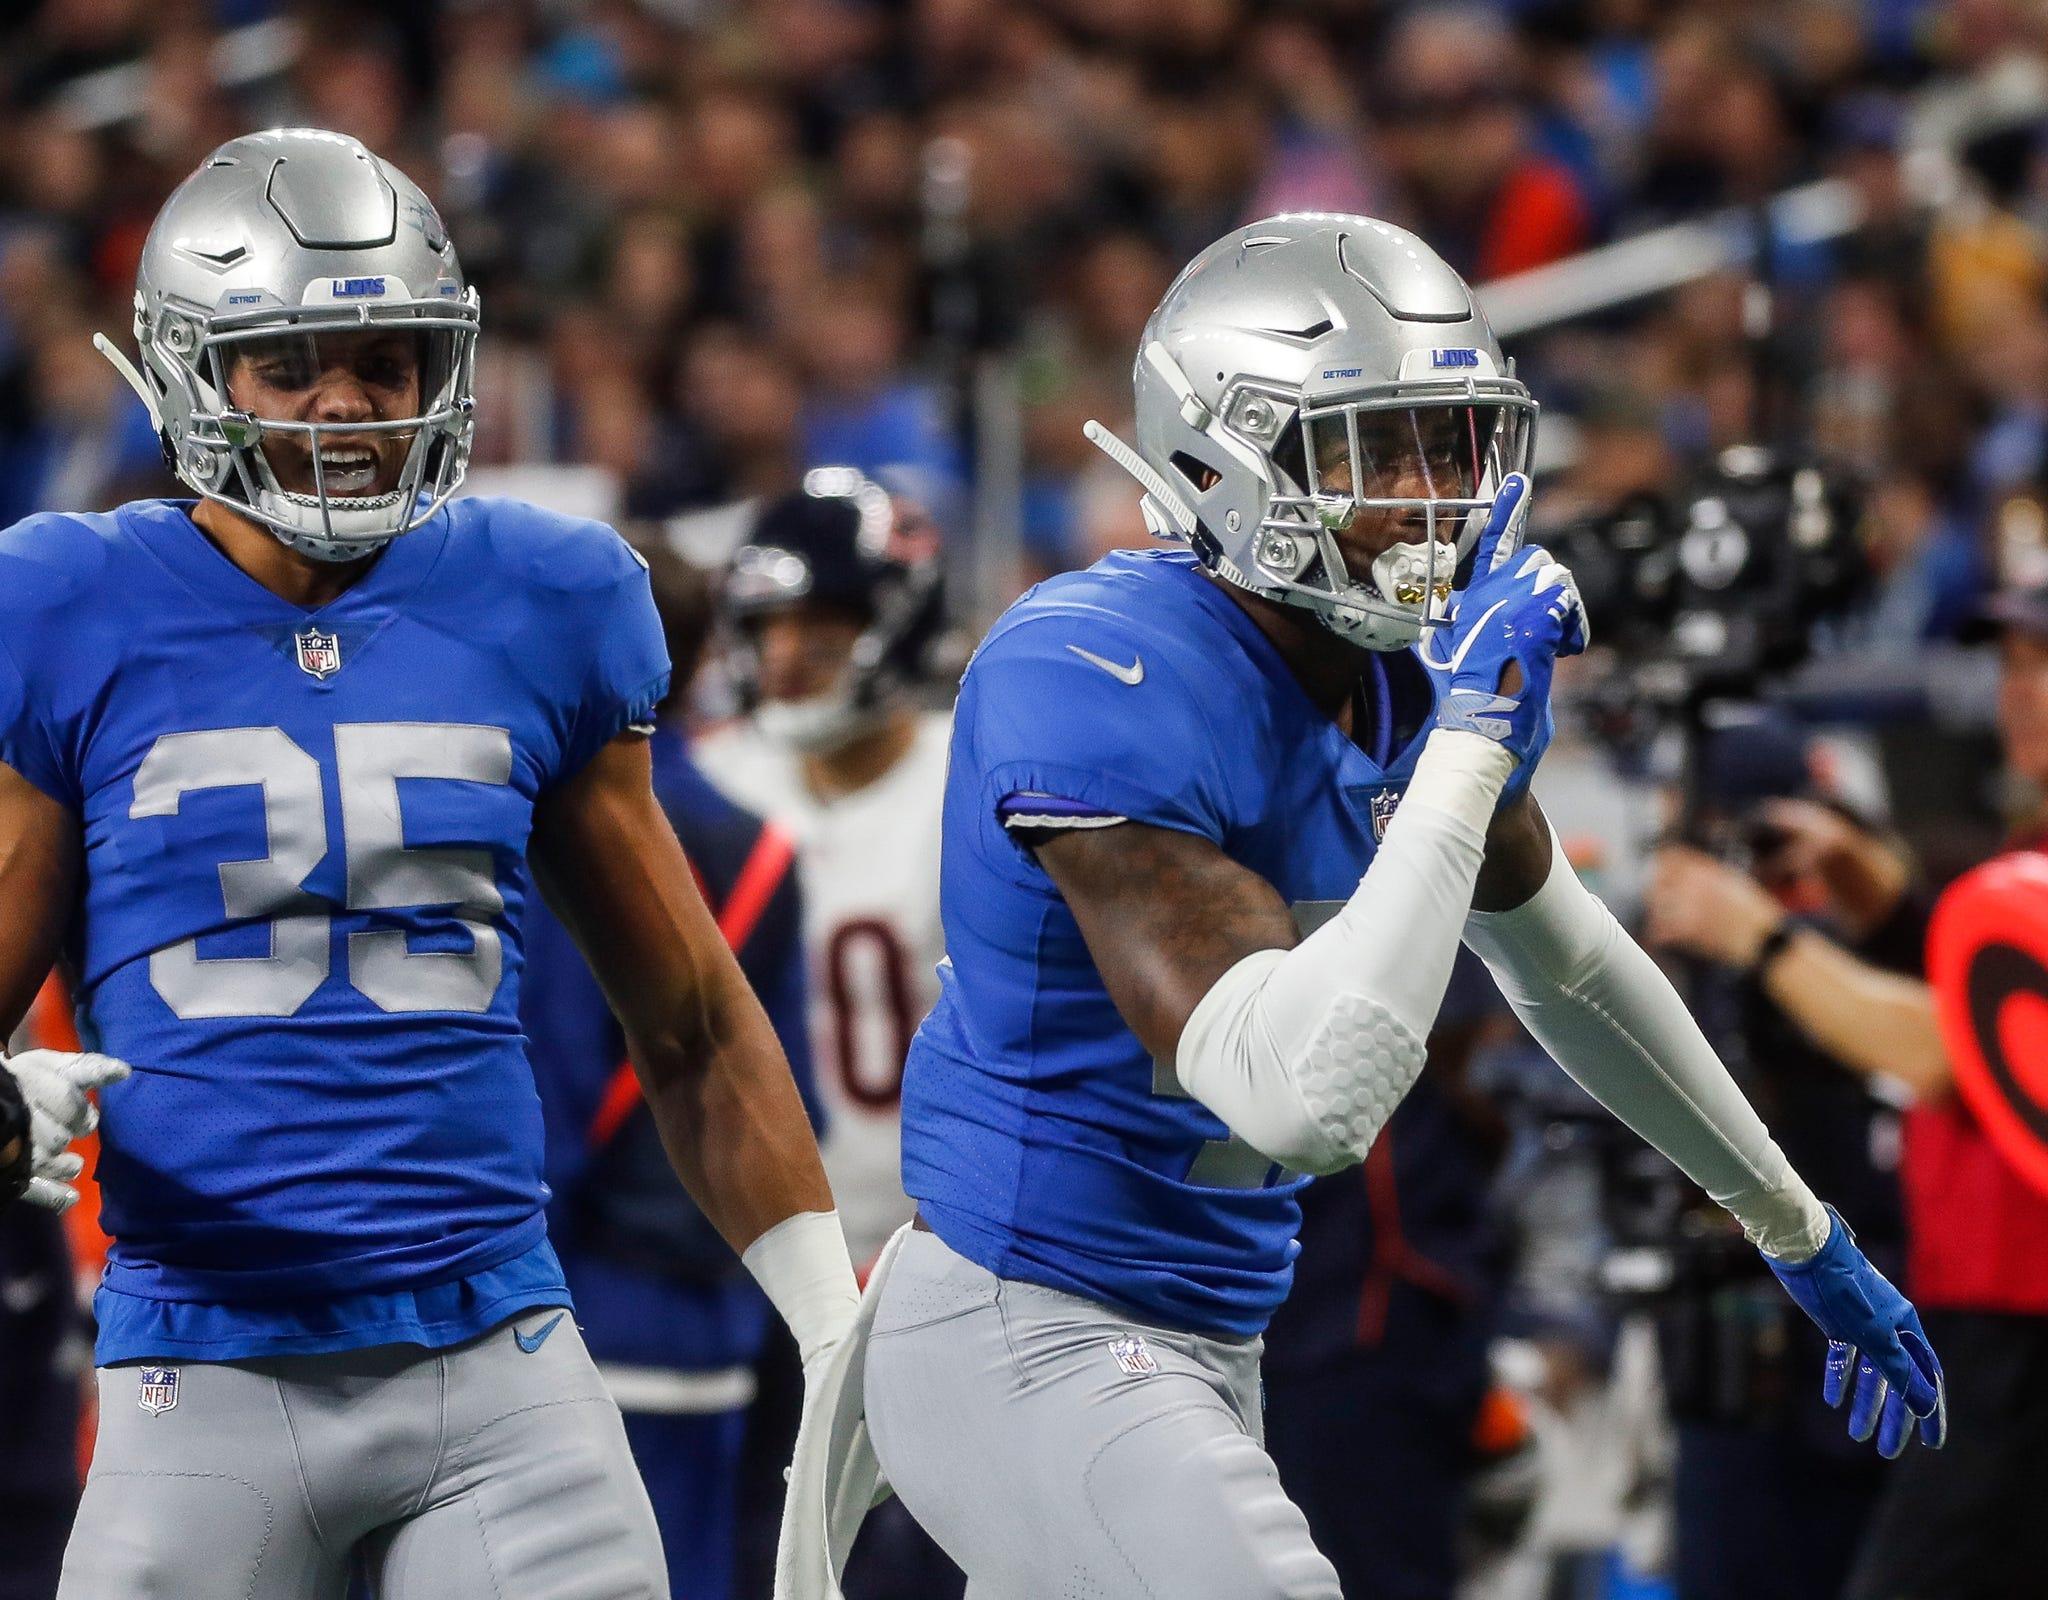 Lions defensive back Tracy Walker celebrates a tackle against Bears during the second half of the Lions' 23-16 loss to the Bears on Thursday, Nov. 22, 2018, at Ford Field.